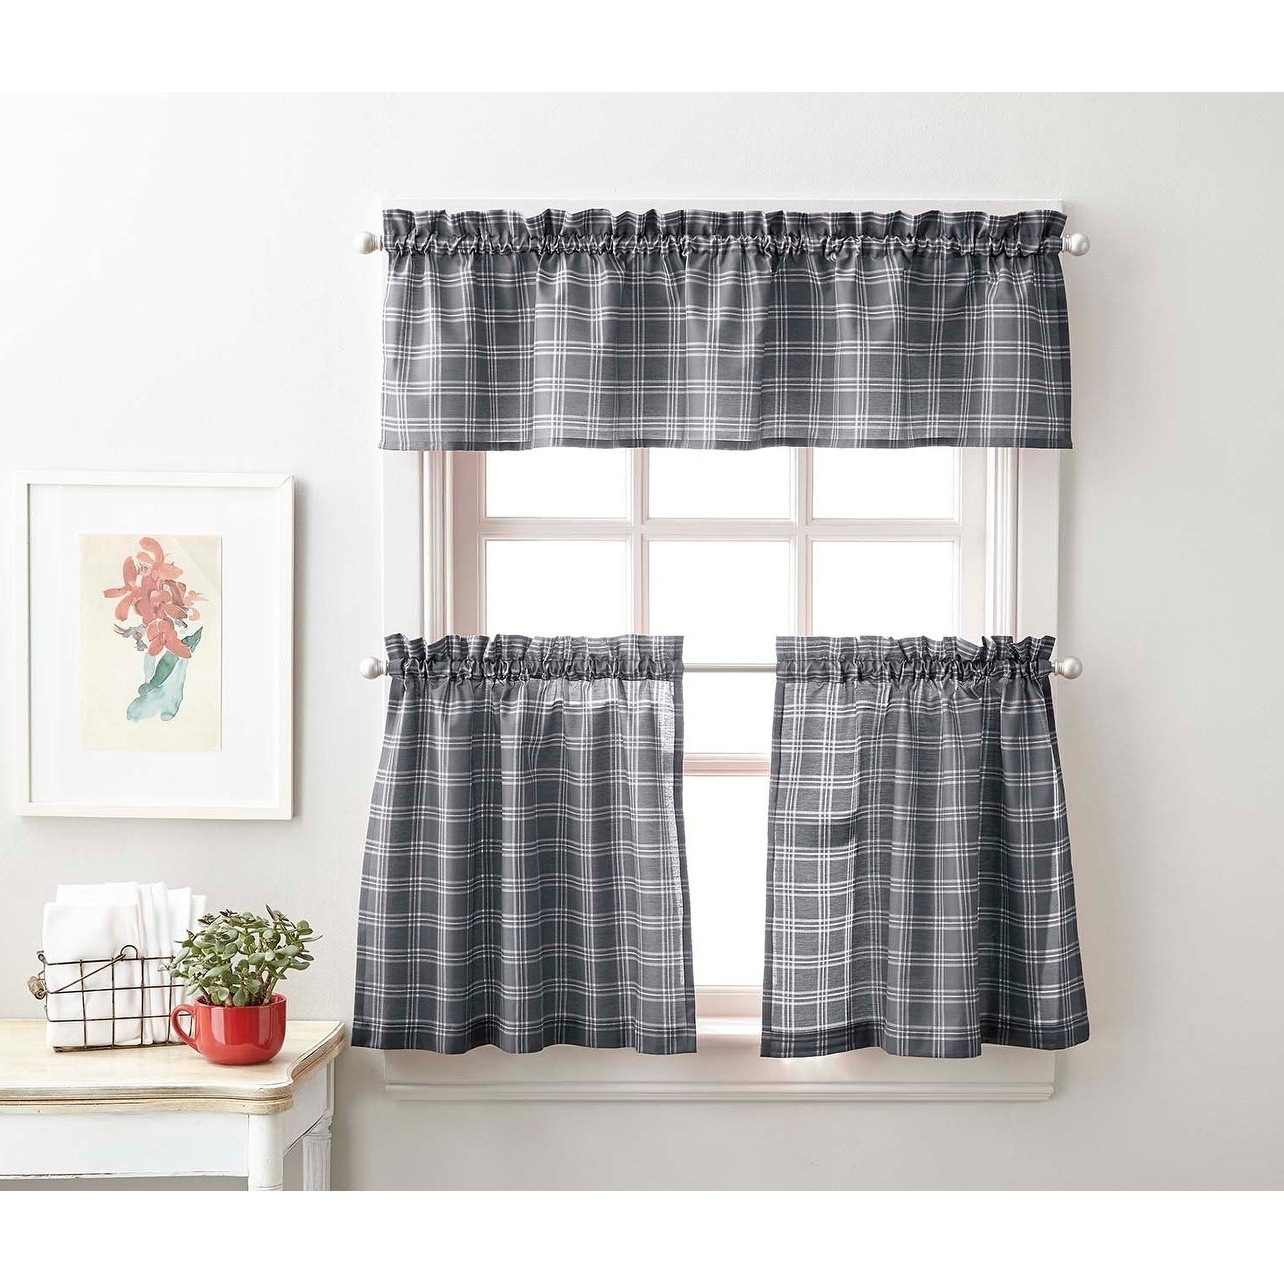 Details About Lodge Plaid 3 Piece Kitchen Curtain Tier And Valance Set – For Well Known Delicious Apples Kitchen Curtain Tier And Valance Sets (View 8 of 20)